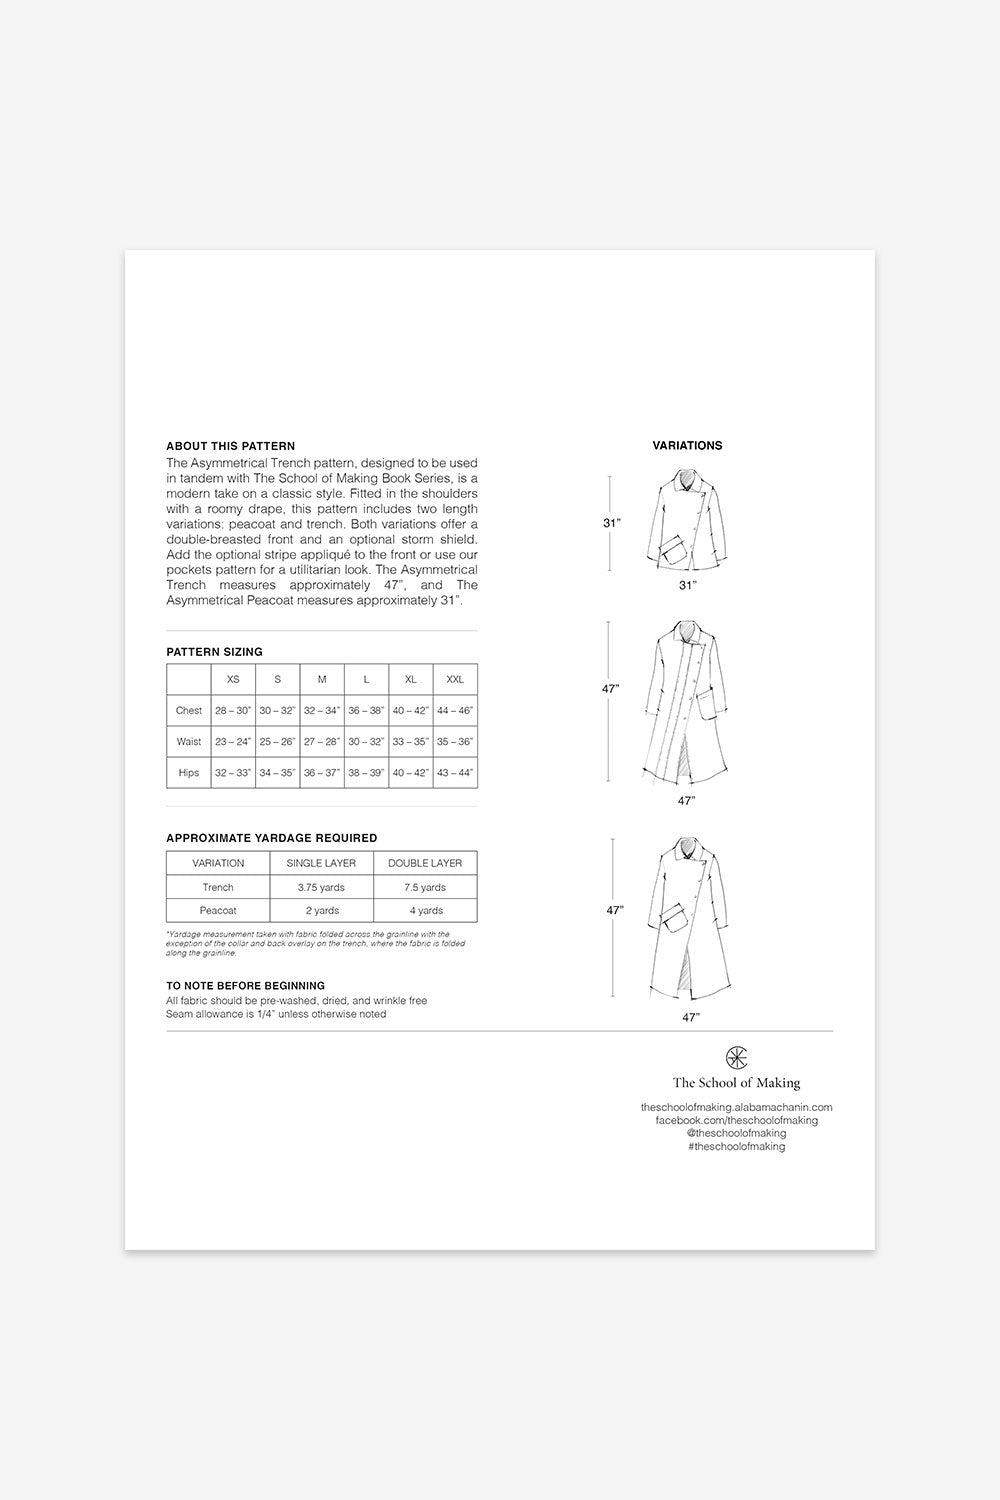 The School of Making The Asymmetrical Trench Pattern Maker Supplies for DIY Clothing